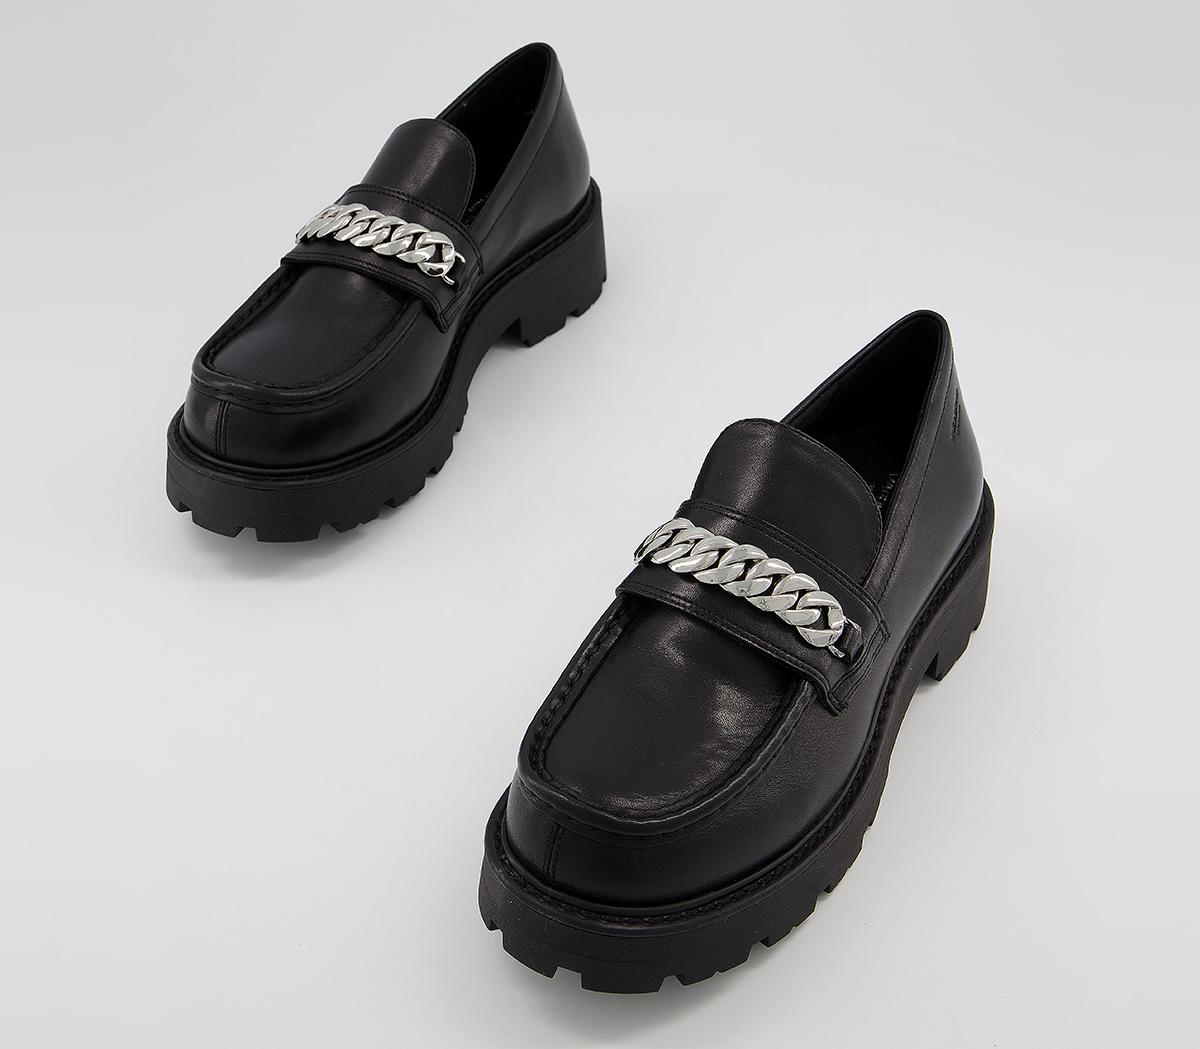 vagabond Cosmo Chain Loafer Black